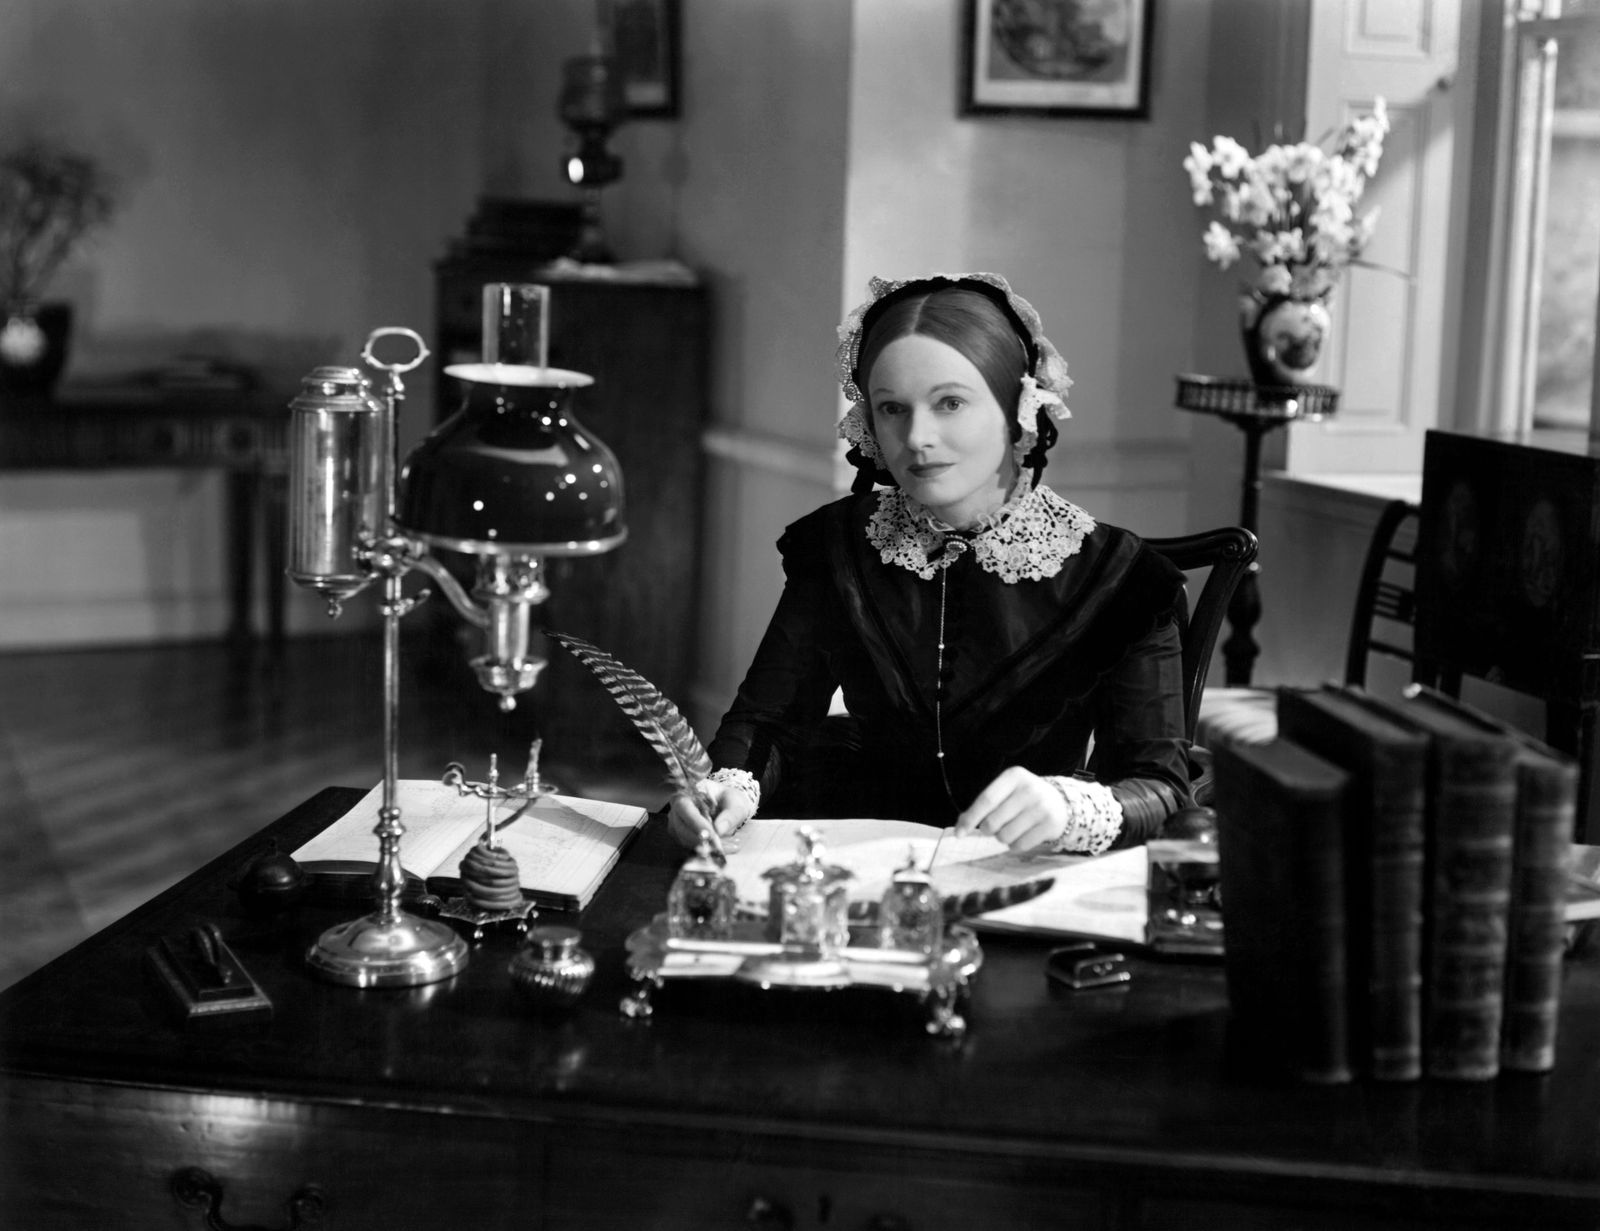 THE LADY WITH THE LAMP, Anna Neagle, 1951